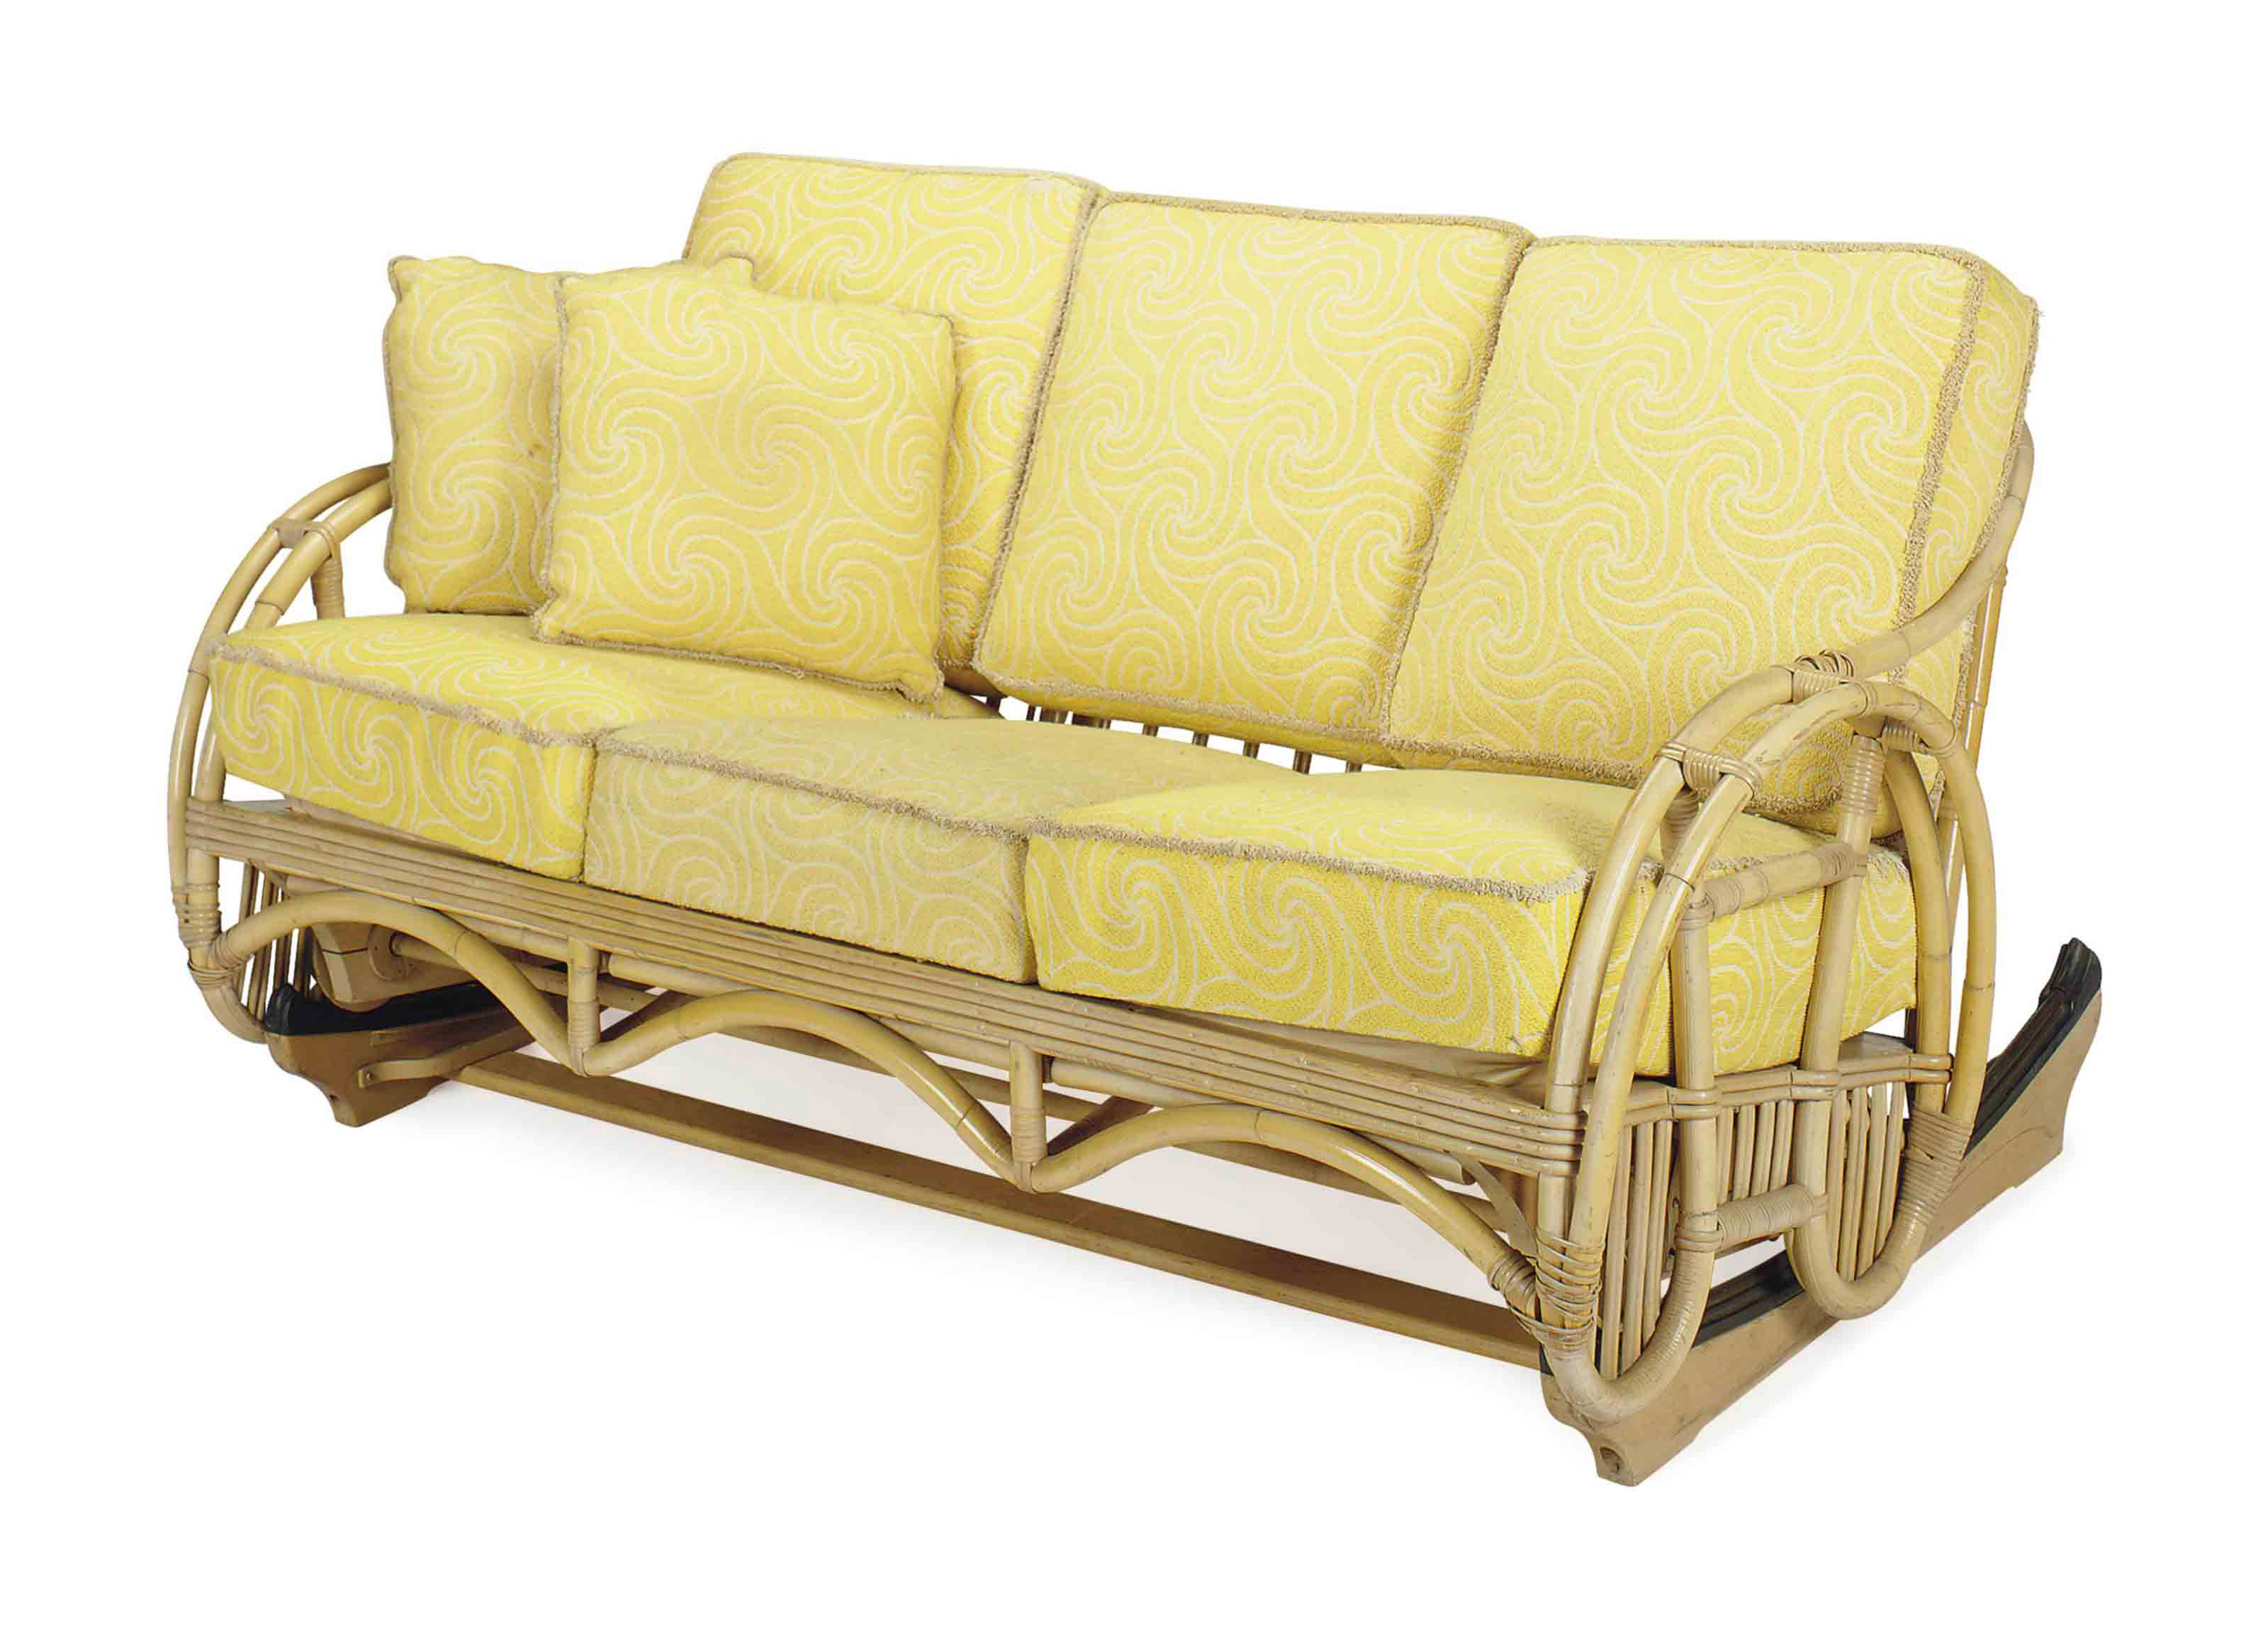 A BAMBOO THREE-SEAT ROCKING SO